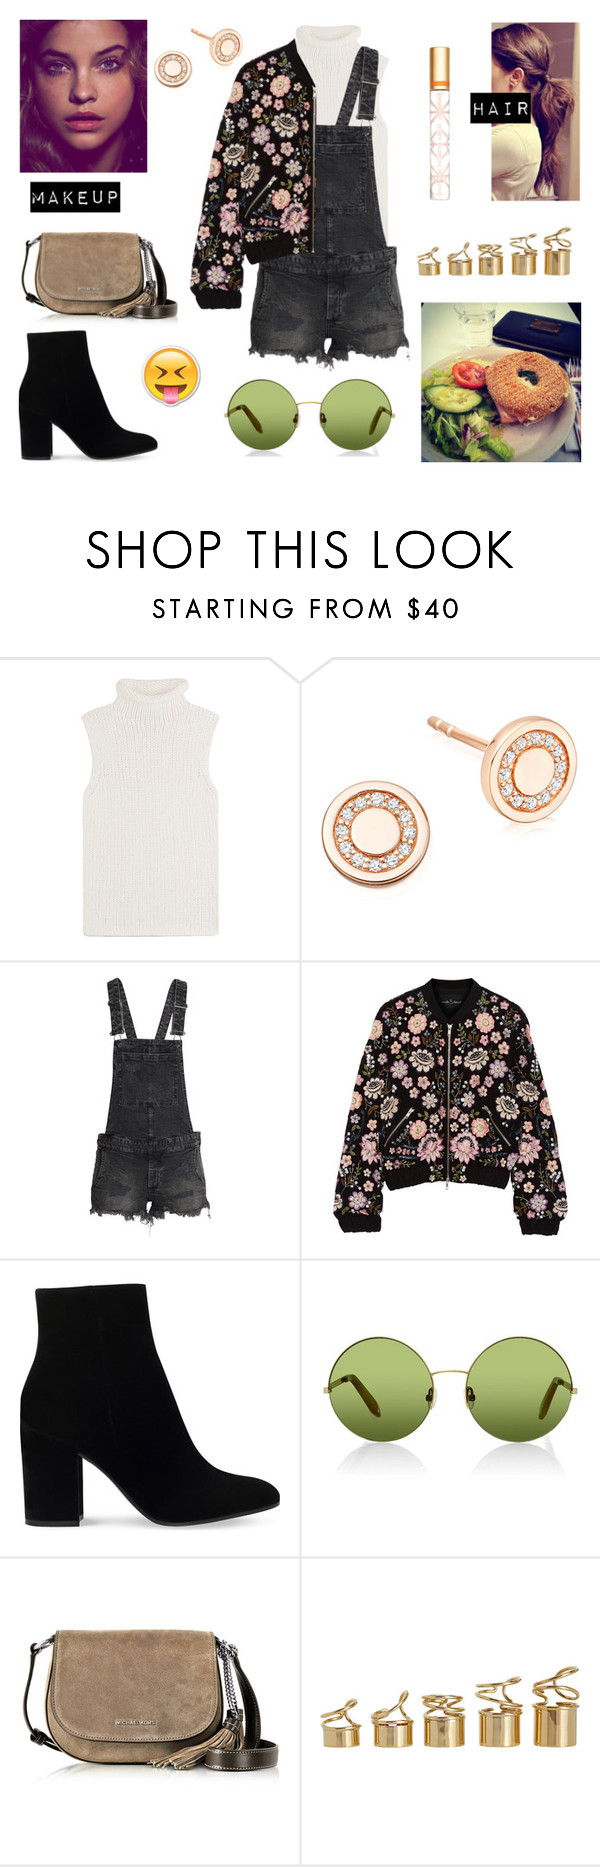 """""""30/09/16"""" by milena-serranista ❤ liked on Polyvore featuring Theory, Astley Clarke, H&M, Needle & Thread, Gianvito Rossi, Victoria, Victoria Beckham, Balenciaga and Tory Burch"""